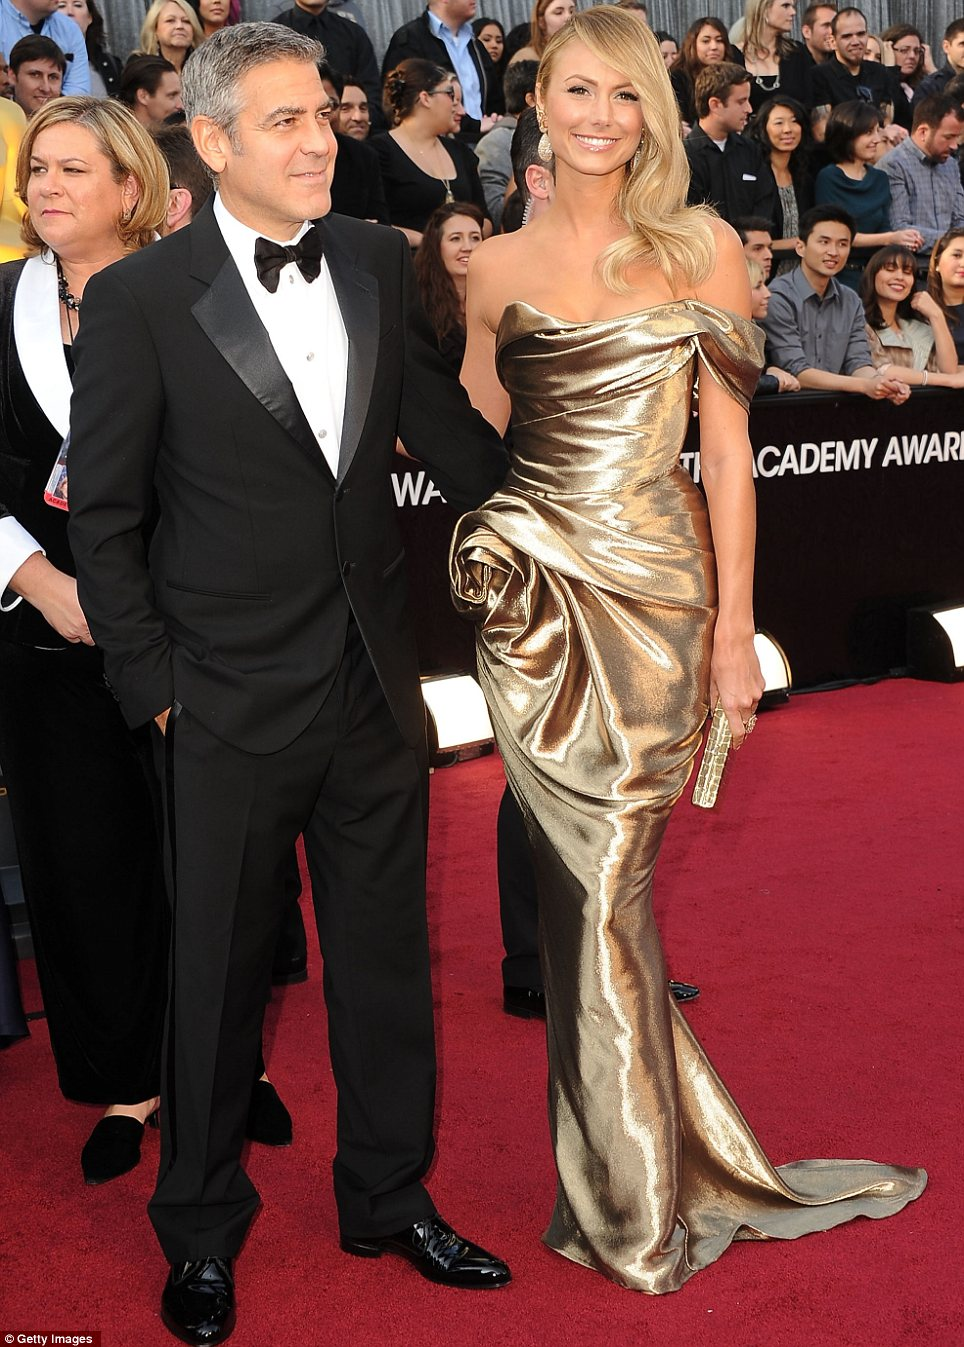 George Clooney in Armani e Stacy Keiber in Marchesa agli Oscar 2012  - Foto Getty